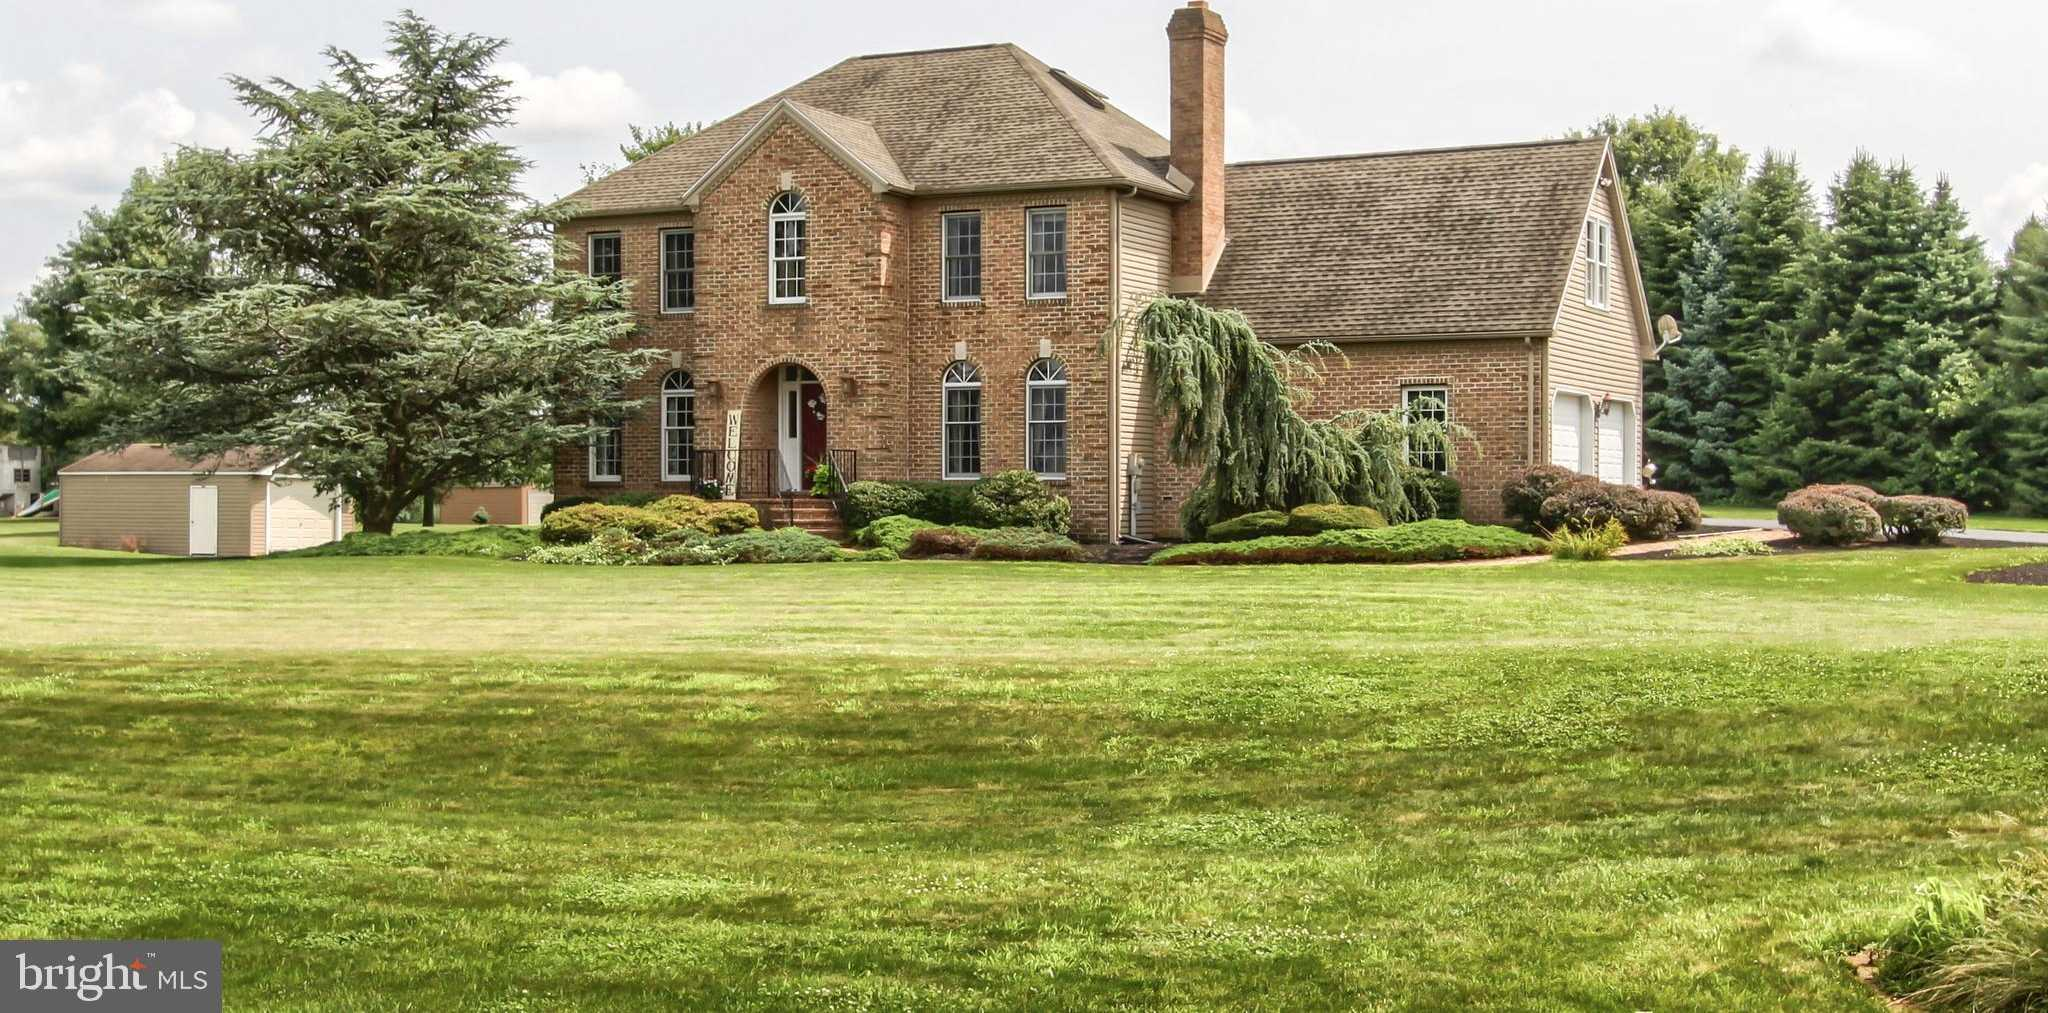 $435,000 - 4Br/3Ba -  for Sale in South Middleton Twp, Carlisle